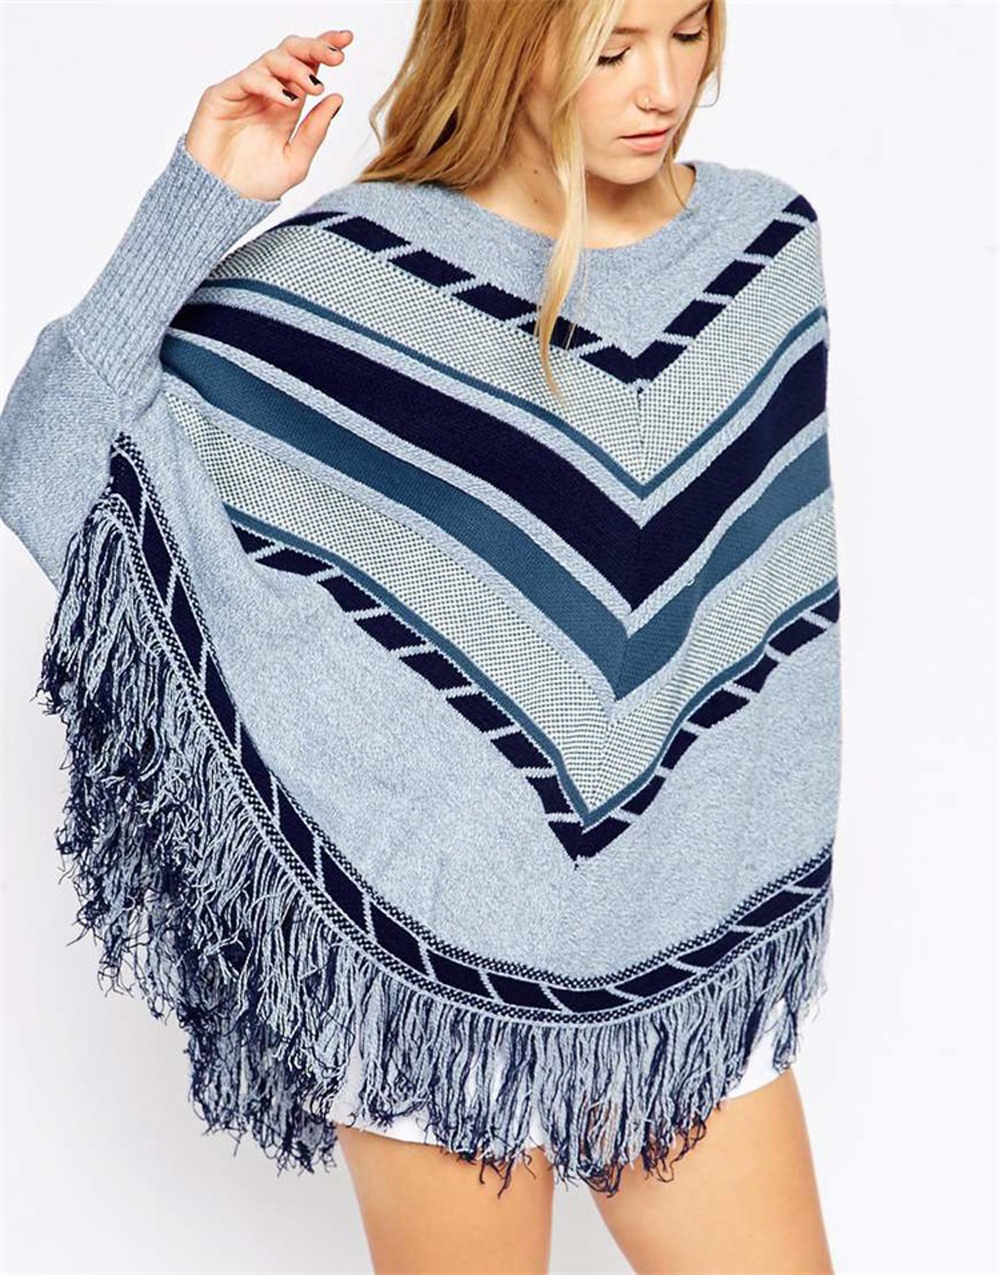 Maternity Tassel Cape Shawl Sweater Poncho Ladies' Cape with Fringed Hem Striped Patchwork Pullover Fashionable Retro Style цена 2017